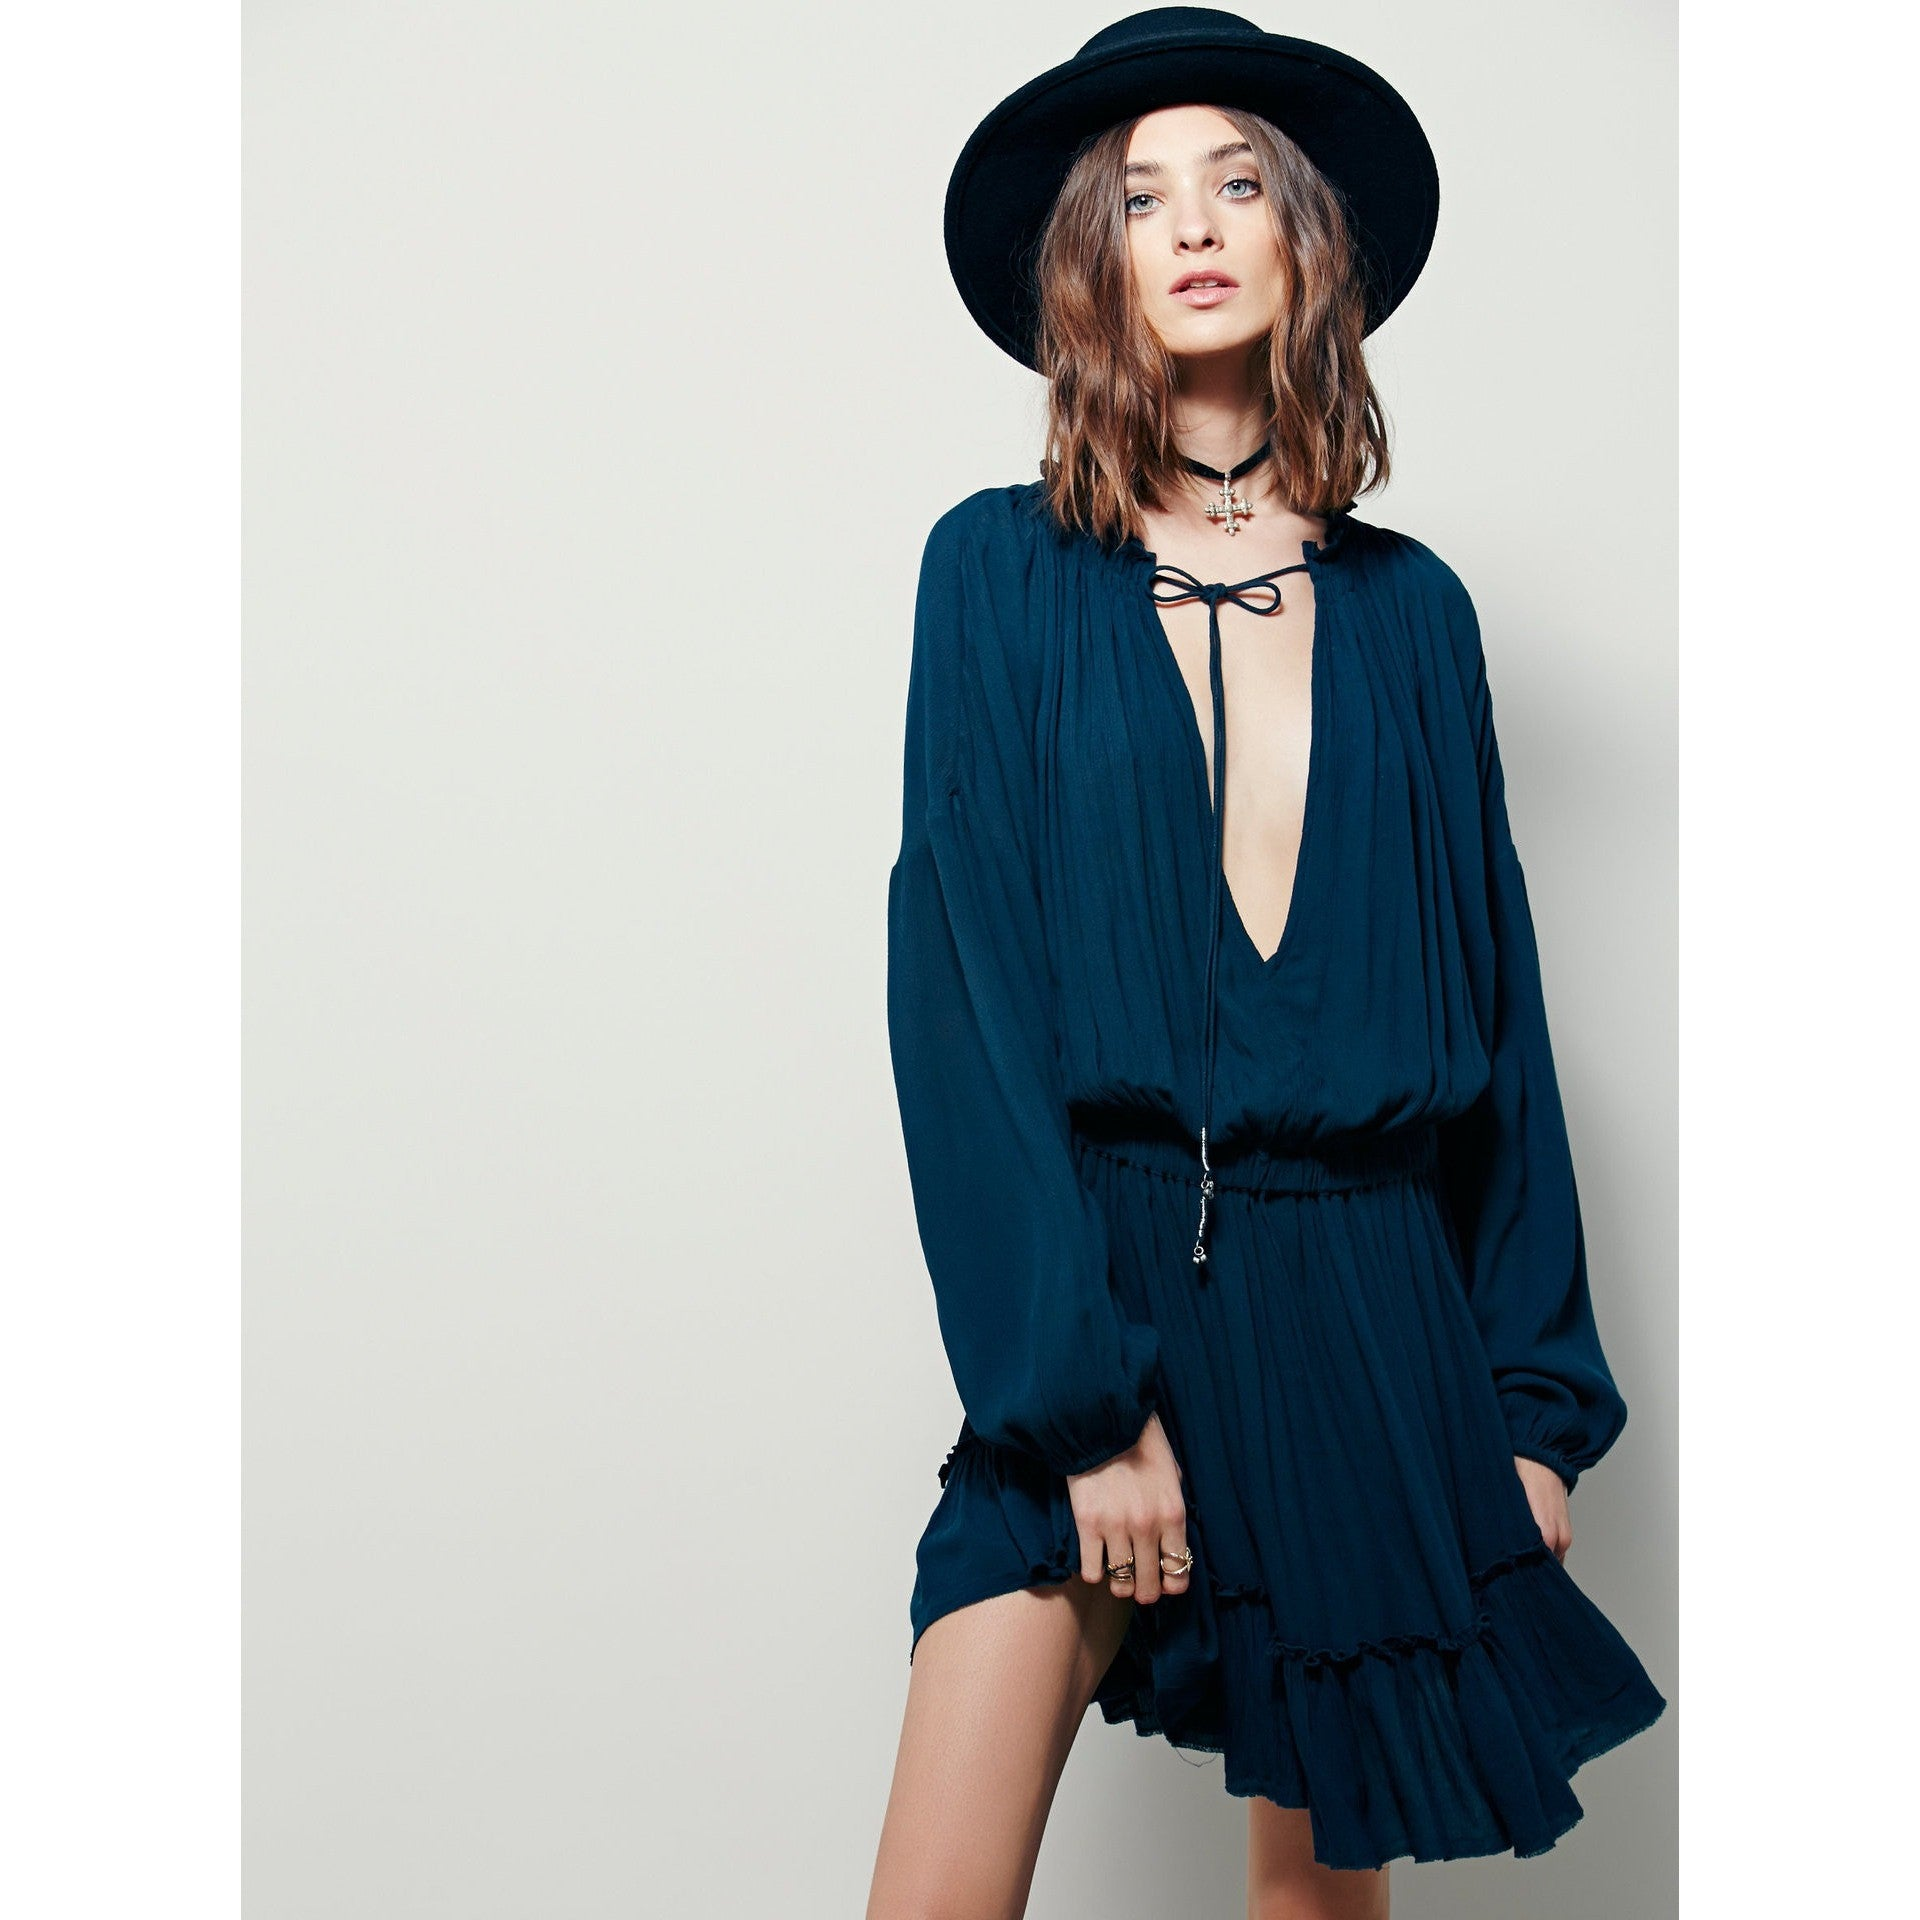 Boho Dress with Tassel Front-More Colors